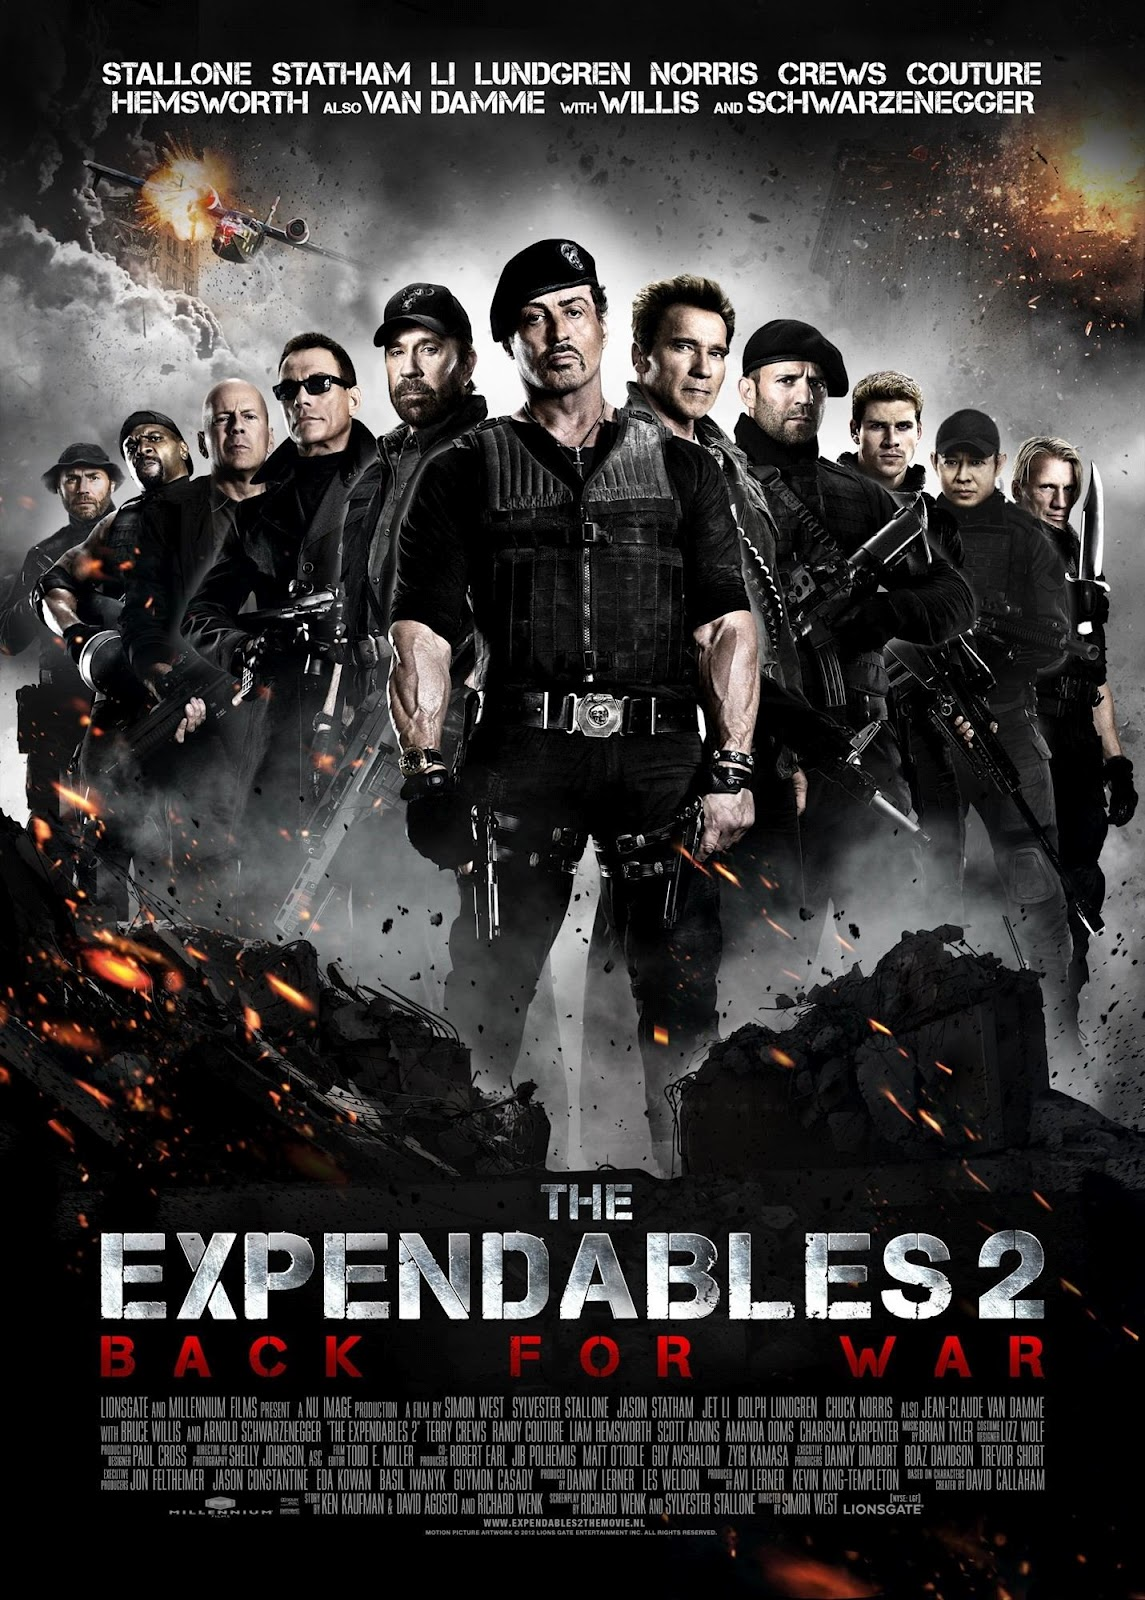 http://3.bp.blogspot.com/-rsTQpED2vWY/UCvQEvPOHyI/AAAAAAAAE40/VvPPXSBUJwA/s1600/poster-the-expendables-2-01.jpg